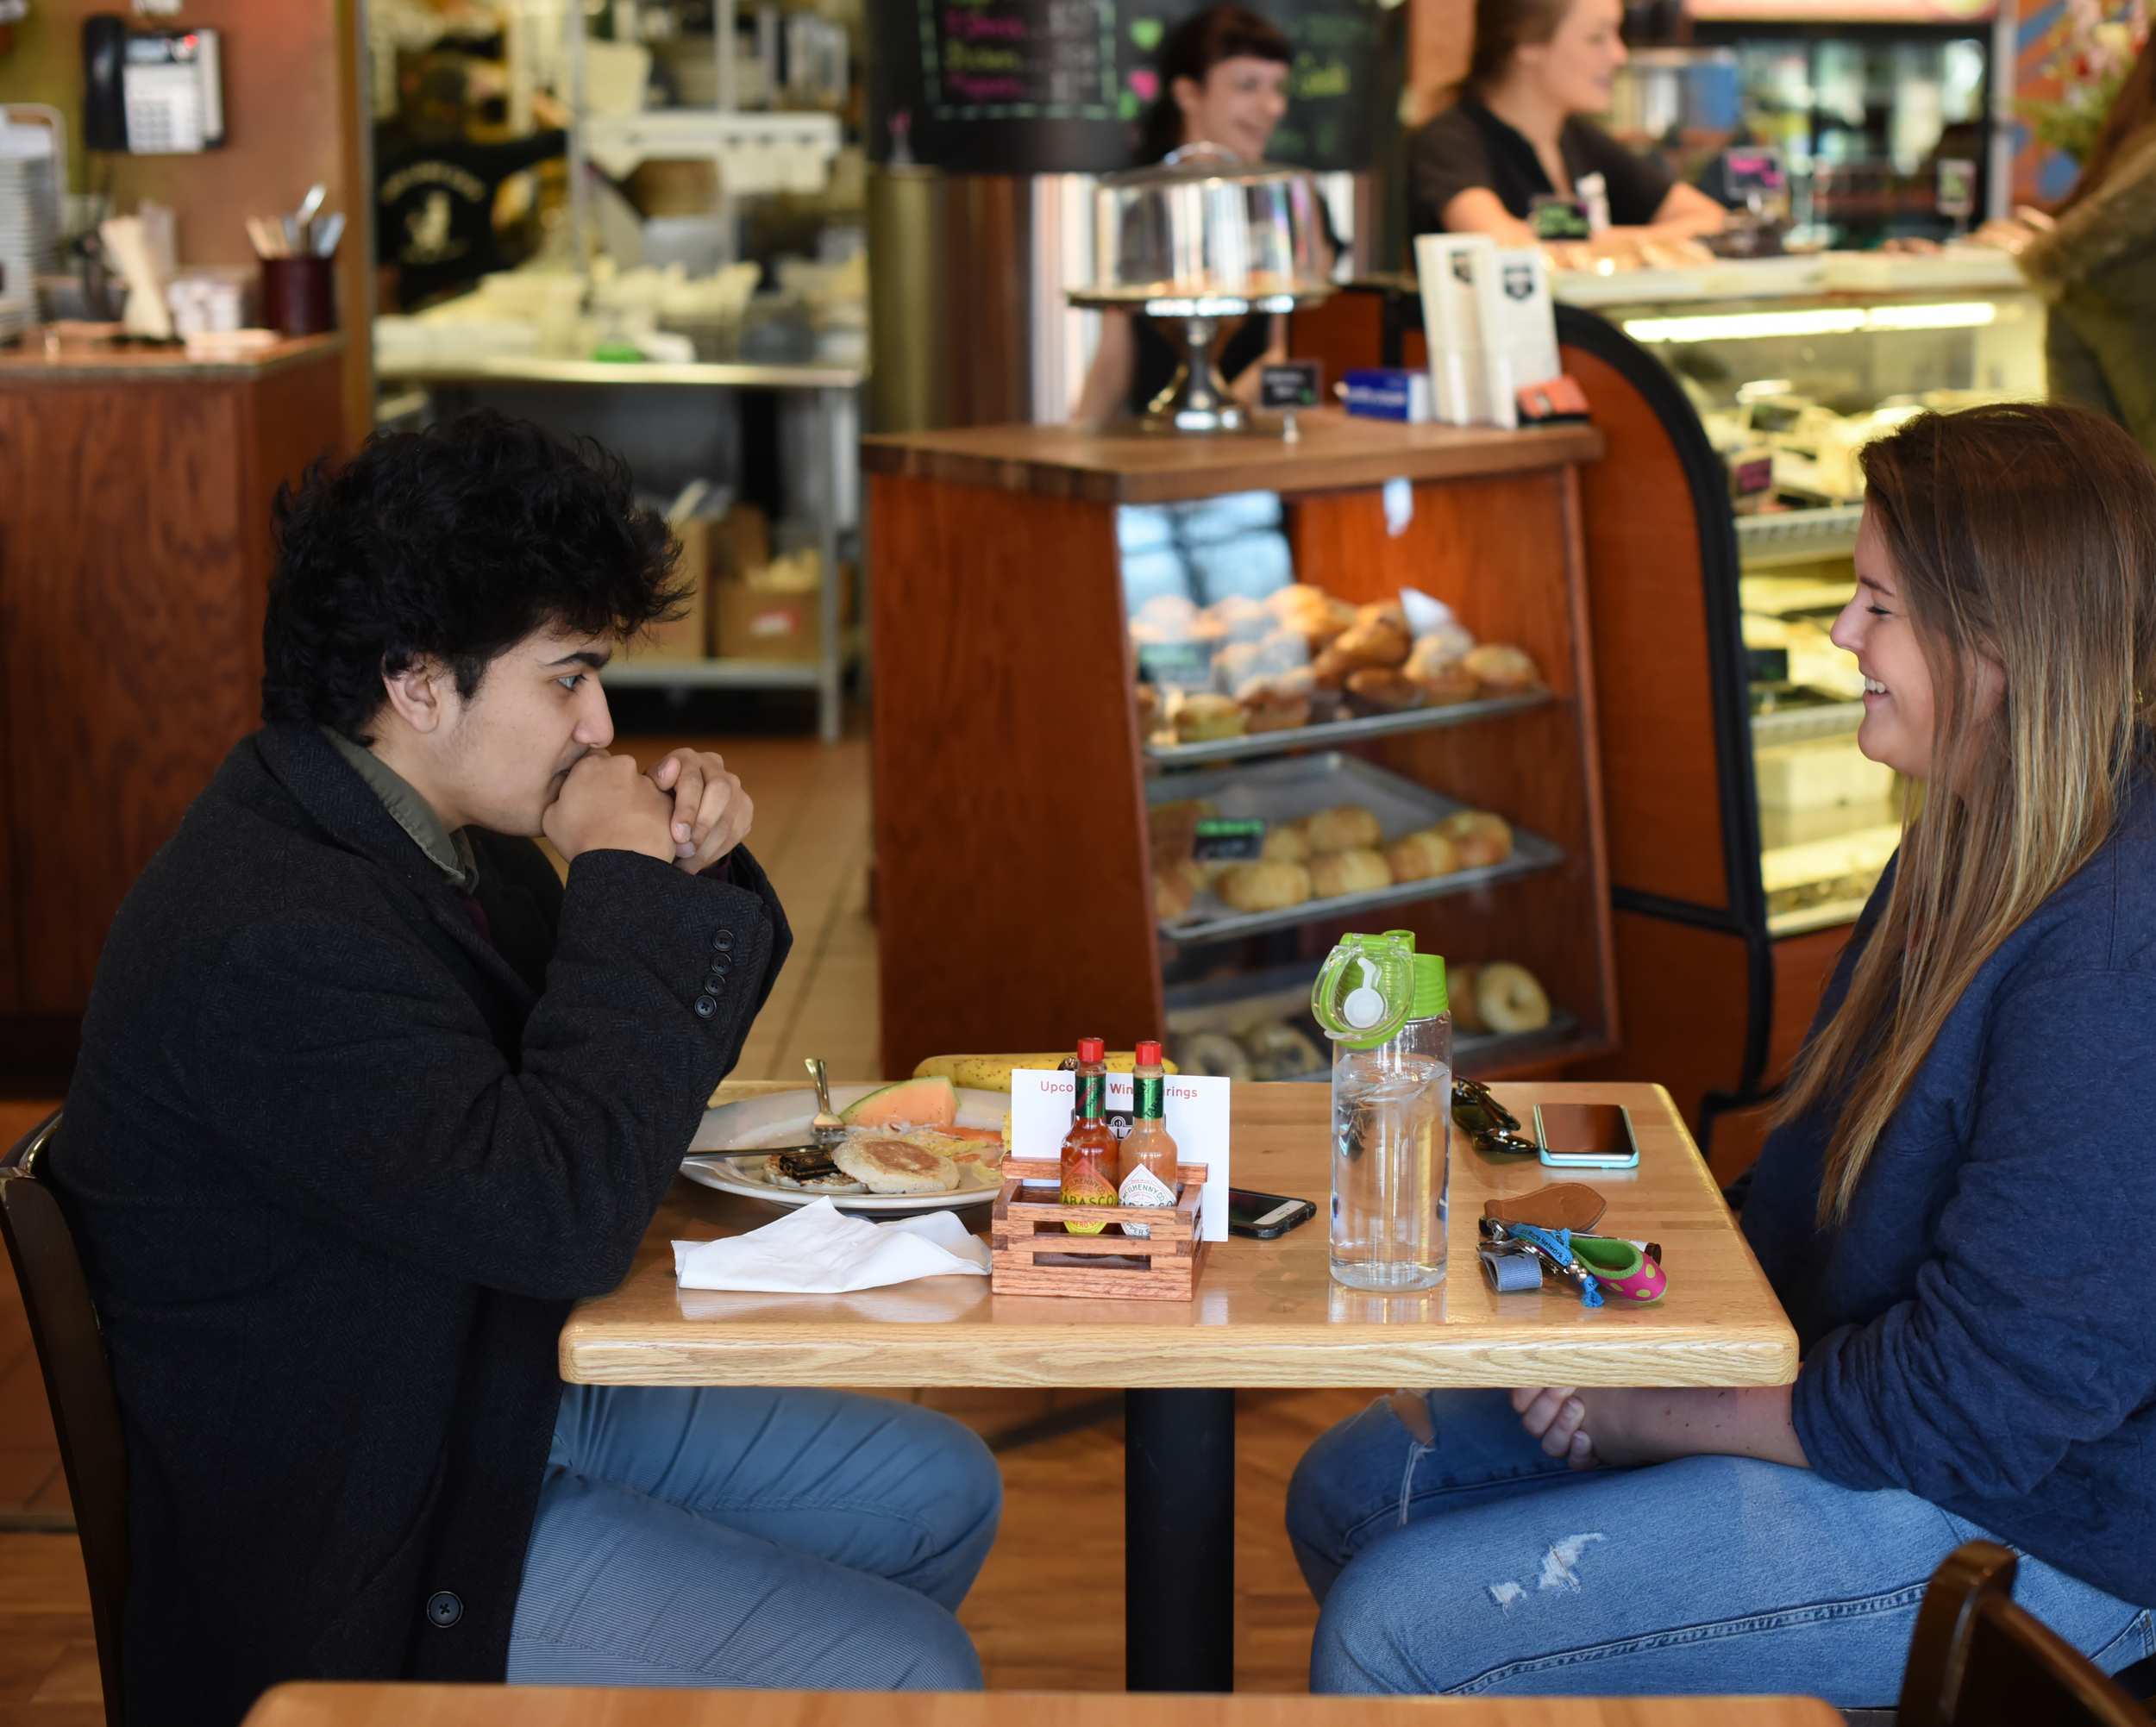 Dani Kosinski, a long-time sports fan, pictured with Associate Life Editor Anokh Palakurthi,jokes her ideal date would include a trip to a Giants or Yankees game. (Zhelun Lang/Daily Campus)